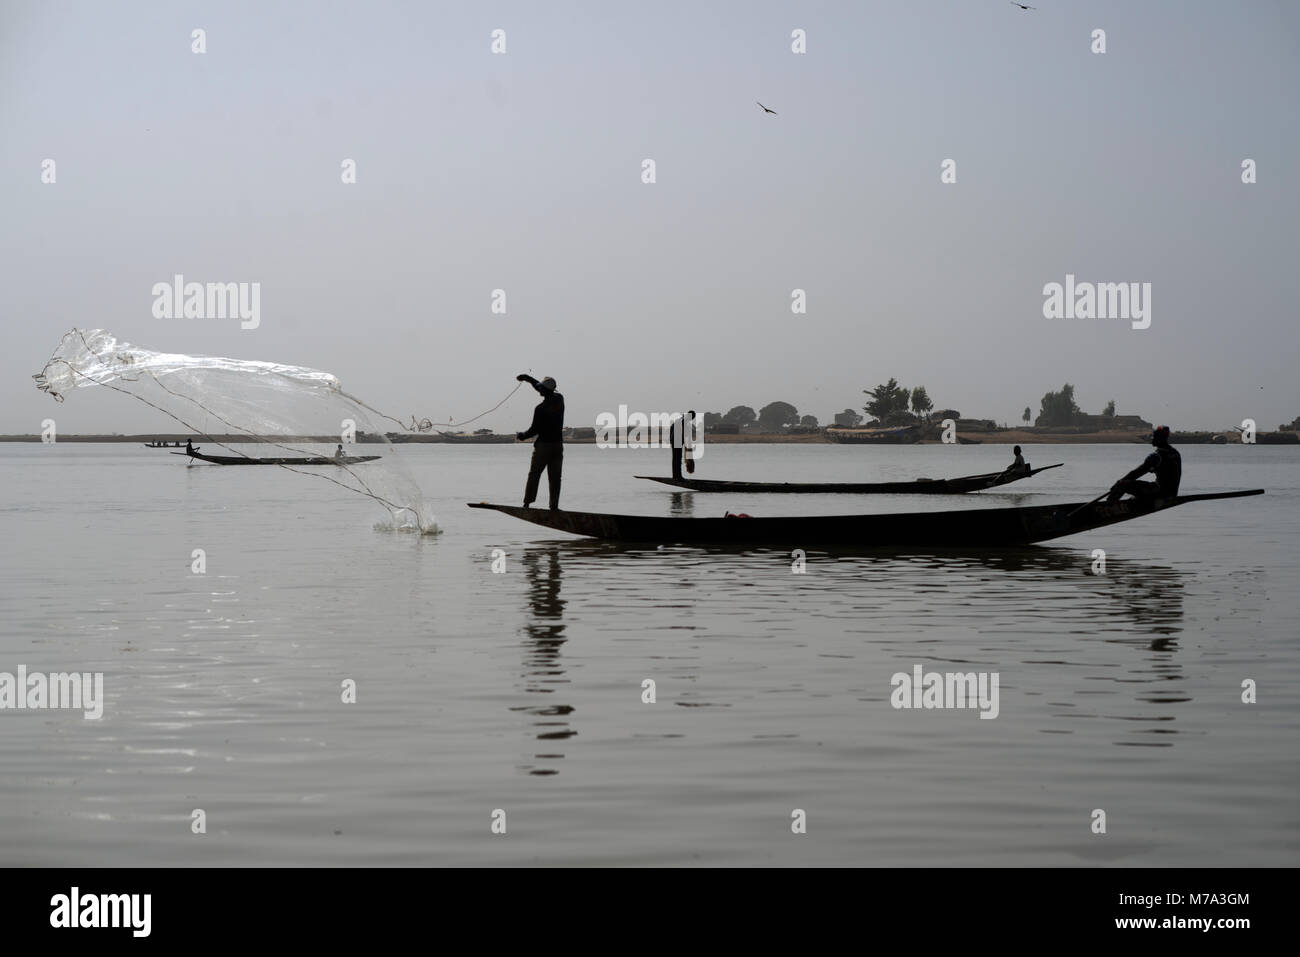 A fisherman casts his net while standing in his boat on the River Niger. Mopti, Mali, West Africa. - Stock Image